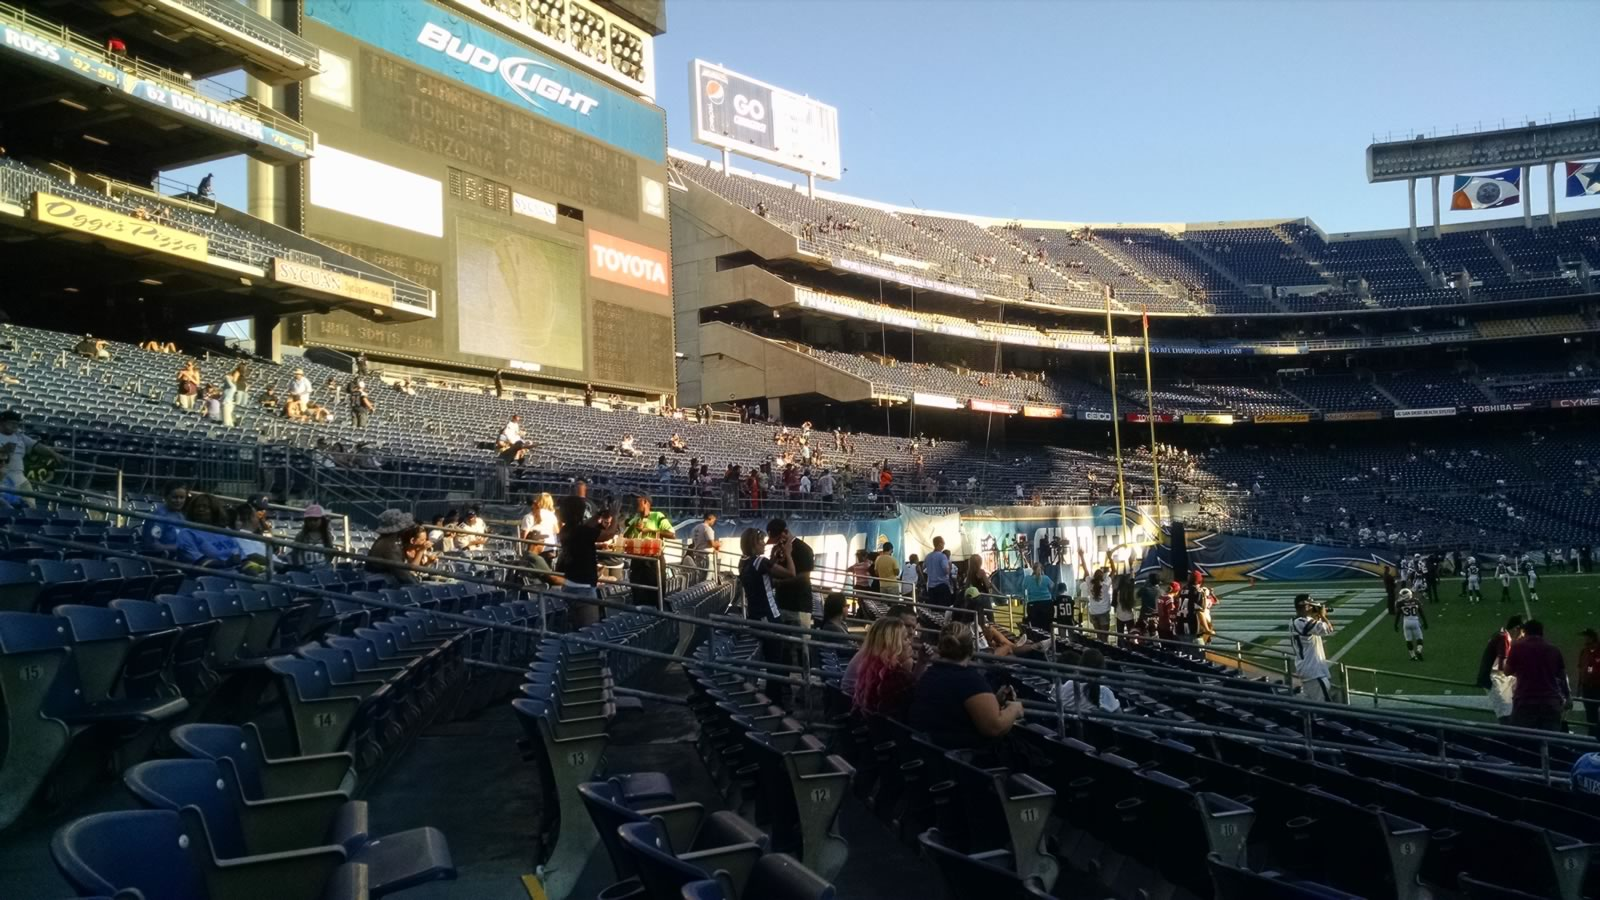 Seat View for Qualcomm Stadium Field 1